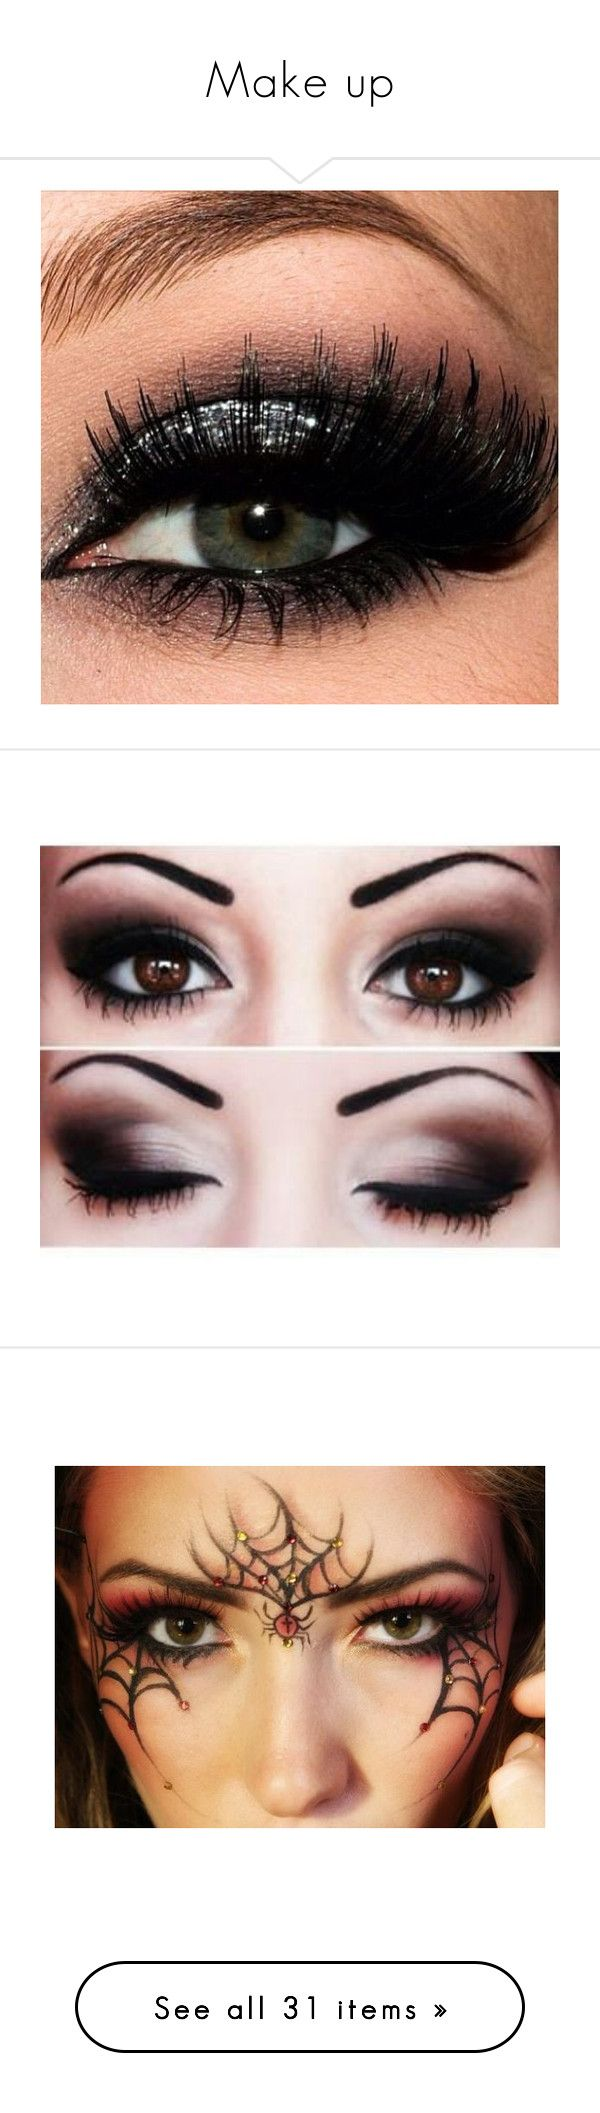 """""""Make up"""" by george-alban ❤ liked on Polyvore featuring makeup, beauty products, eye makeup, eyes, beauty, eyeshadow, images, costumes, black swan costume and angel costume"""